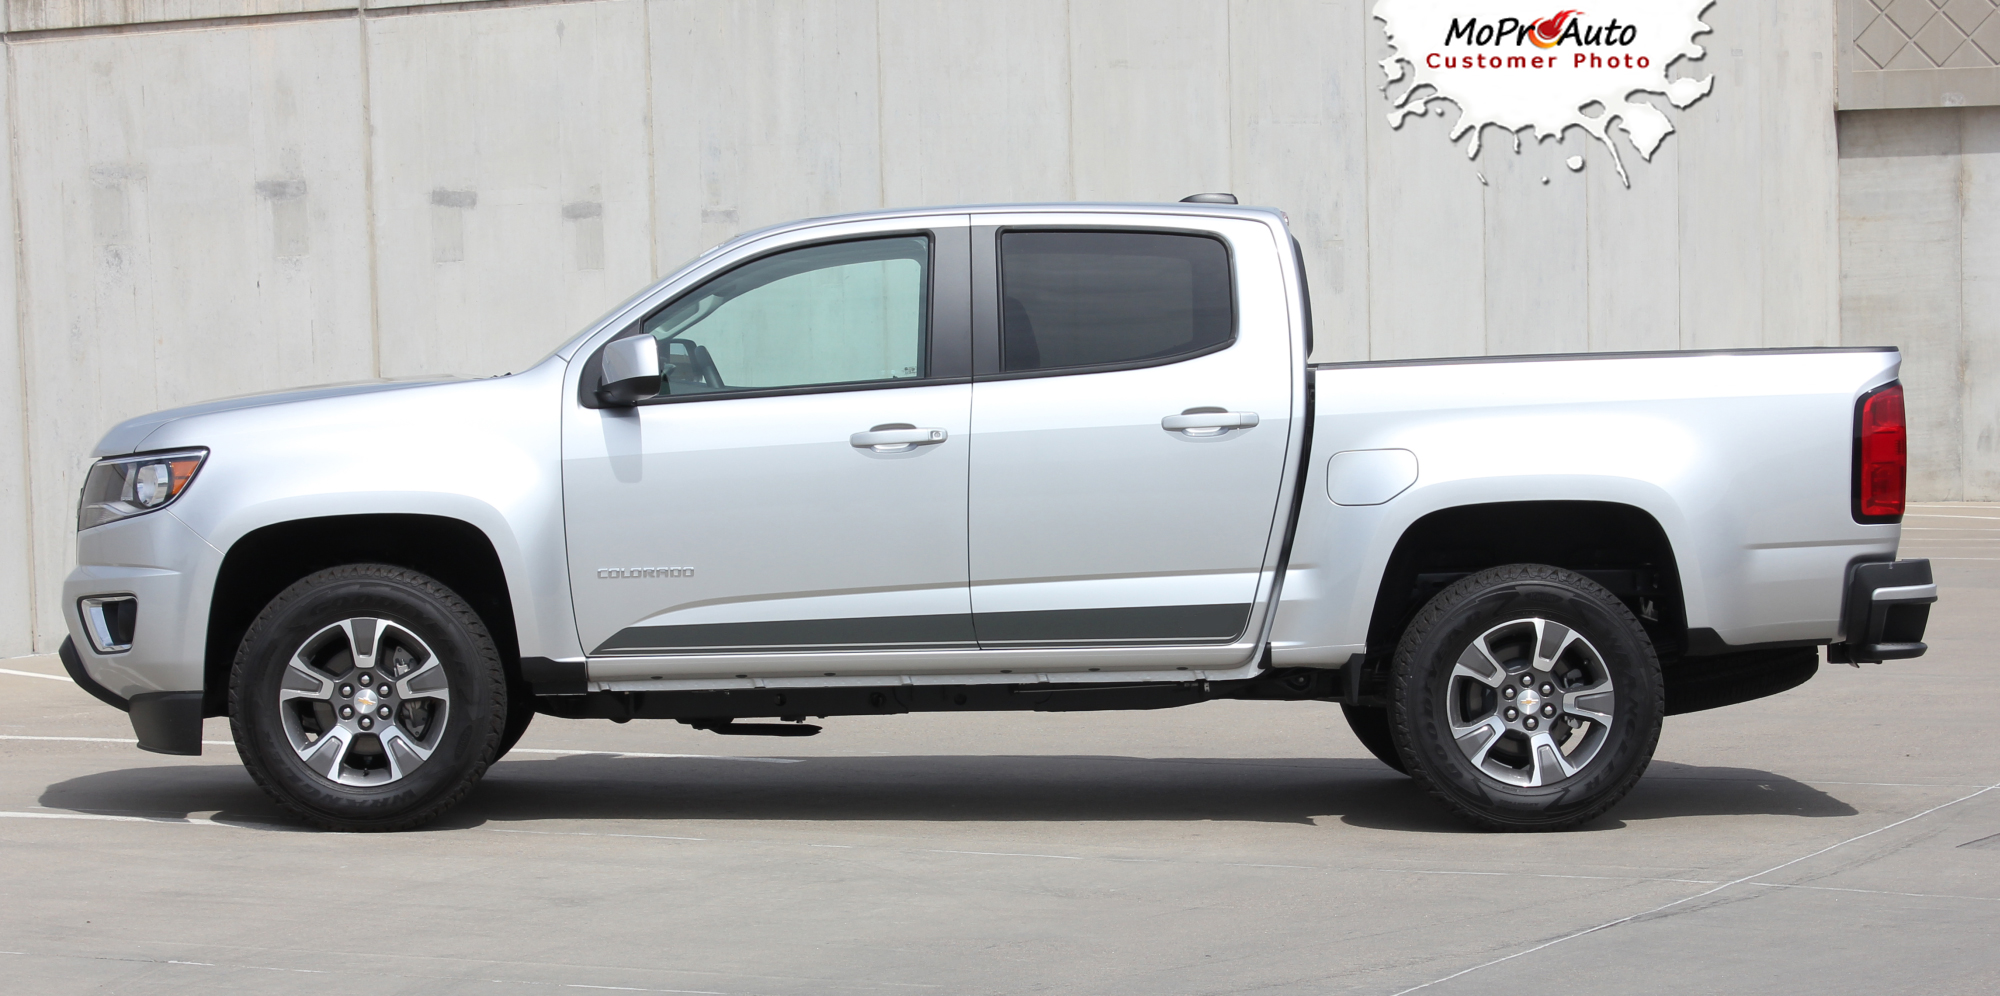 RAMPART - Chevy Colorado Vinyl Graphics, Stripes and Decals Package by MoProAuto Pro Design Series